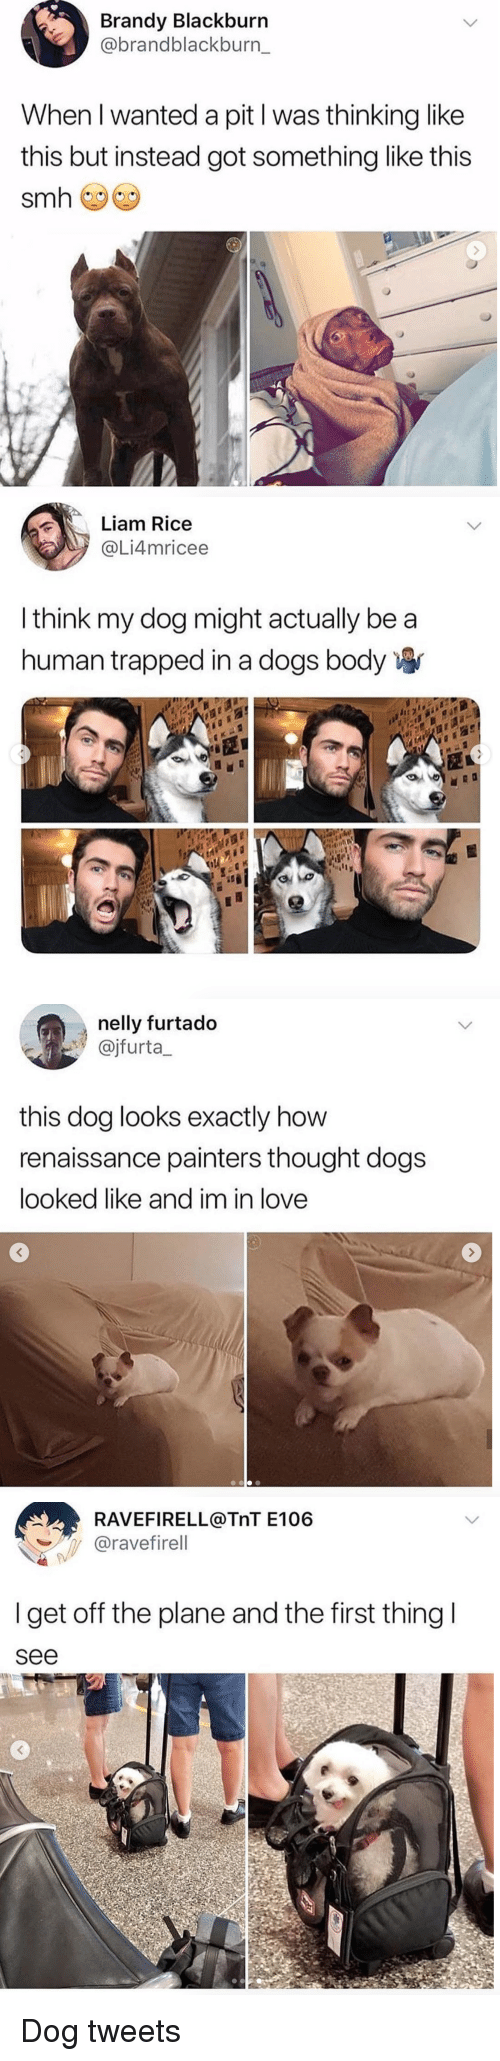 Nelly: Brandy Blackburn  @brandblackburn_  When I wanted a pit l was thinking like  this but instead got something like this   Liam Rice  @Li4mricee  I think my dog might actually be a  human trapped in a dogs body   nelly furtado  ajfurta  this dog looks exactly how  renaissance painters thought dogs  looked like and im in love   RAVEFIRELL@TnT E106  ︶ -,. @ravefirell  I get off the plane and the first thing  see Dog tweets